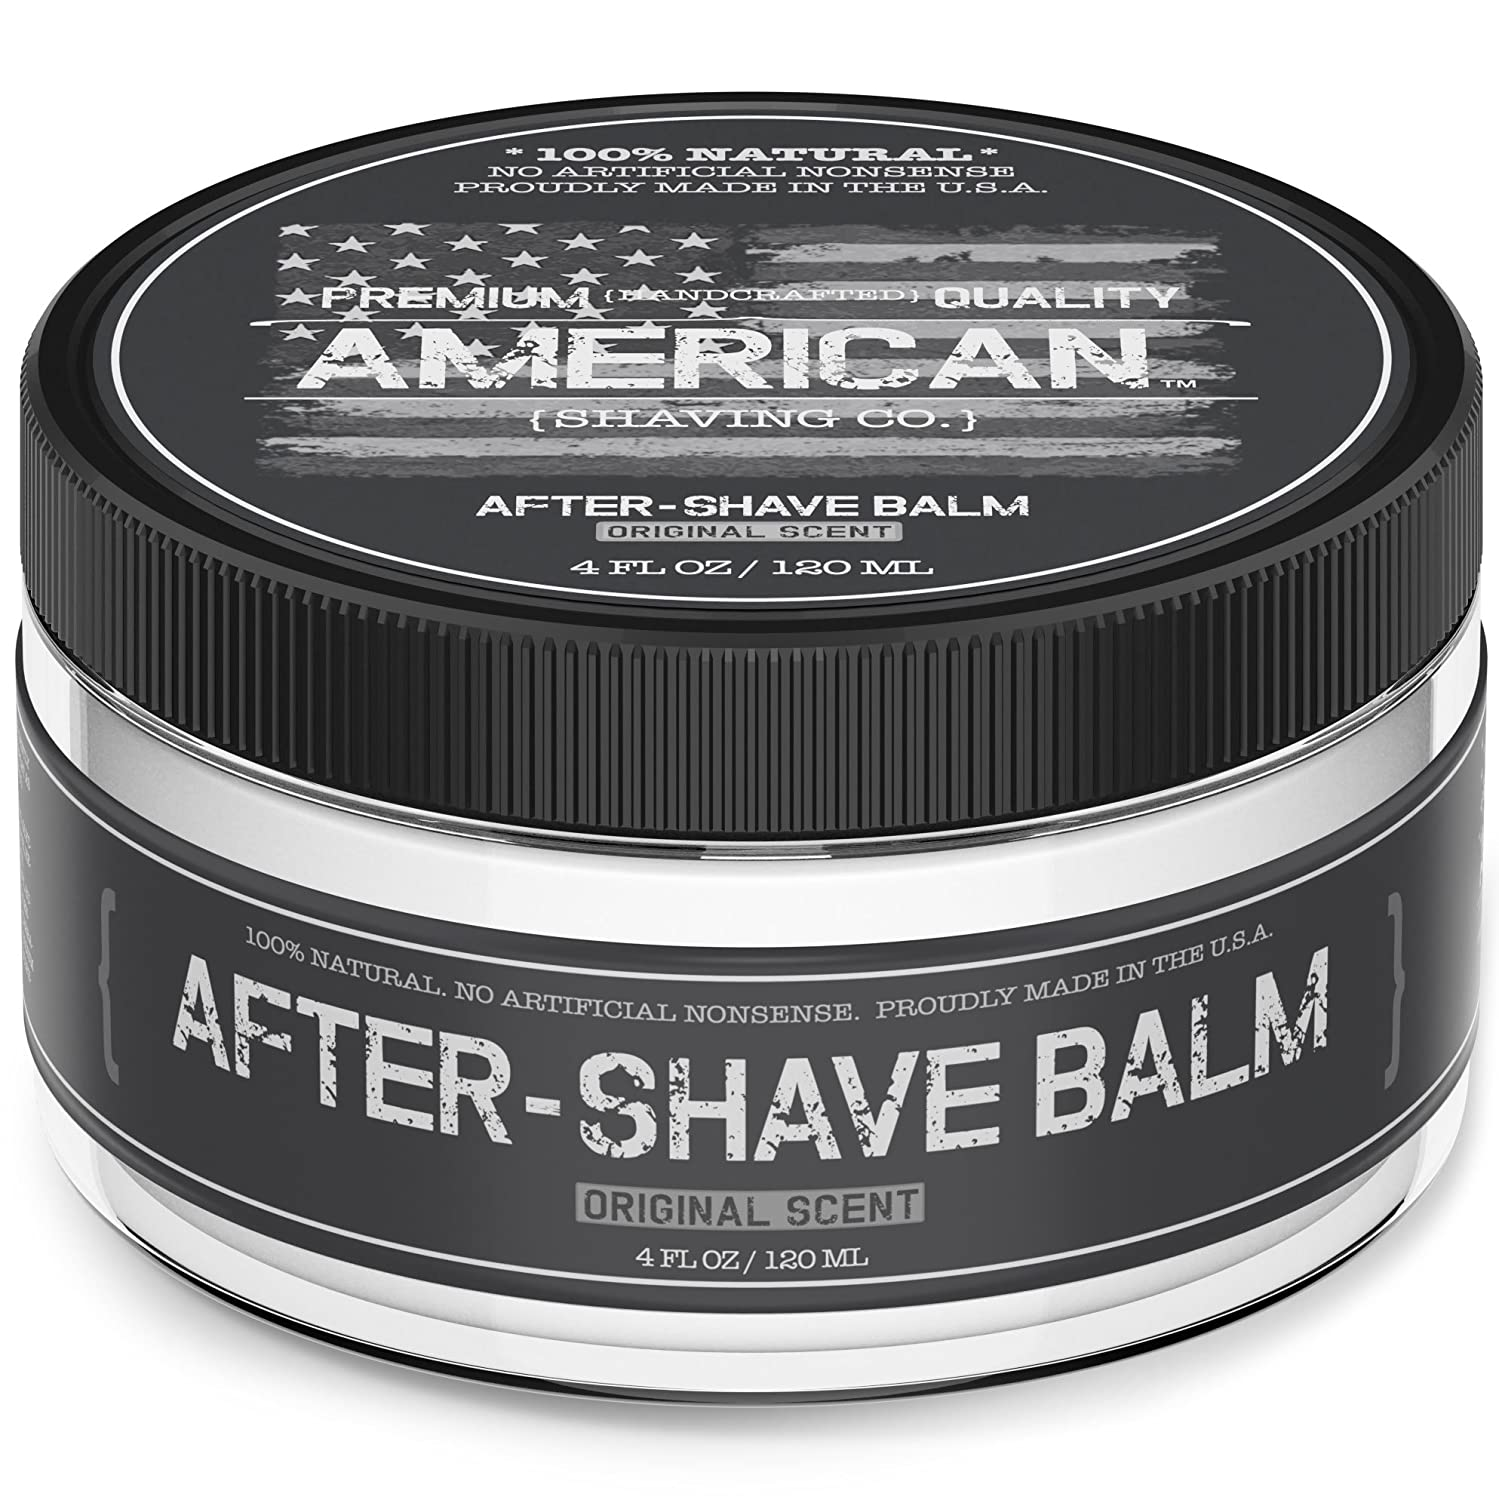 Top 8 Best Aftershave Balms for Men to Prevent Rashes and Irritation 2018-2020 - cover